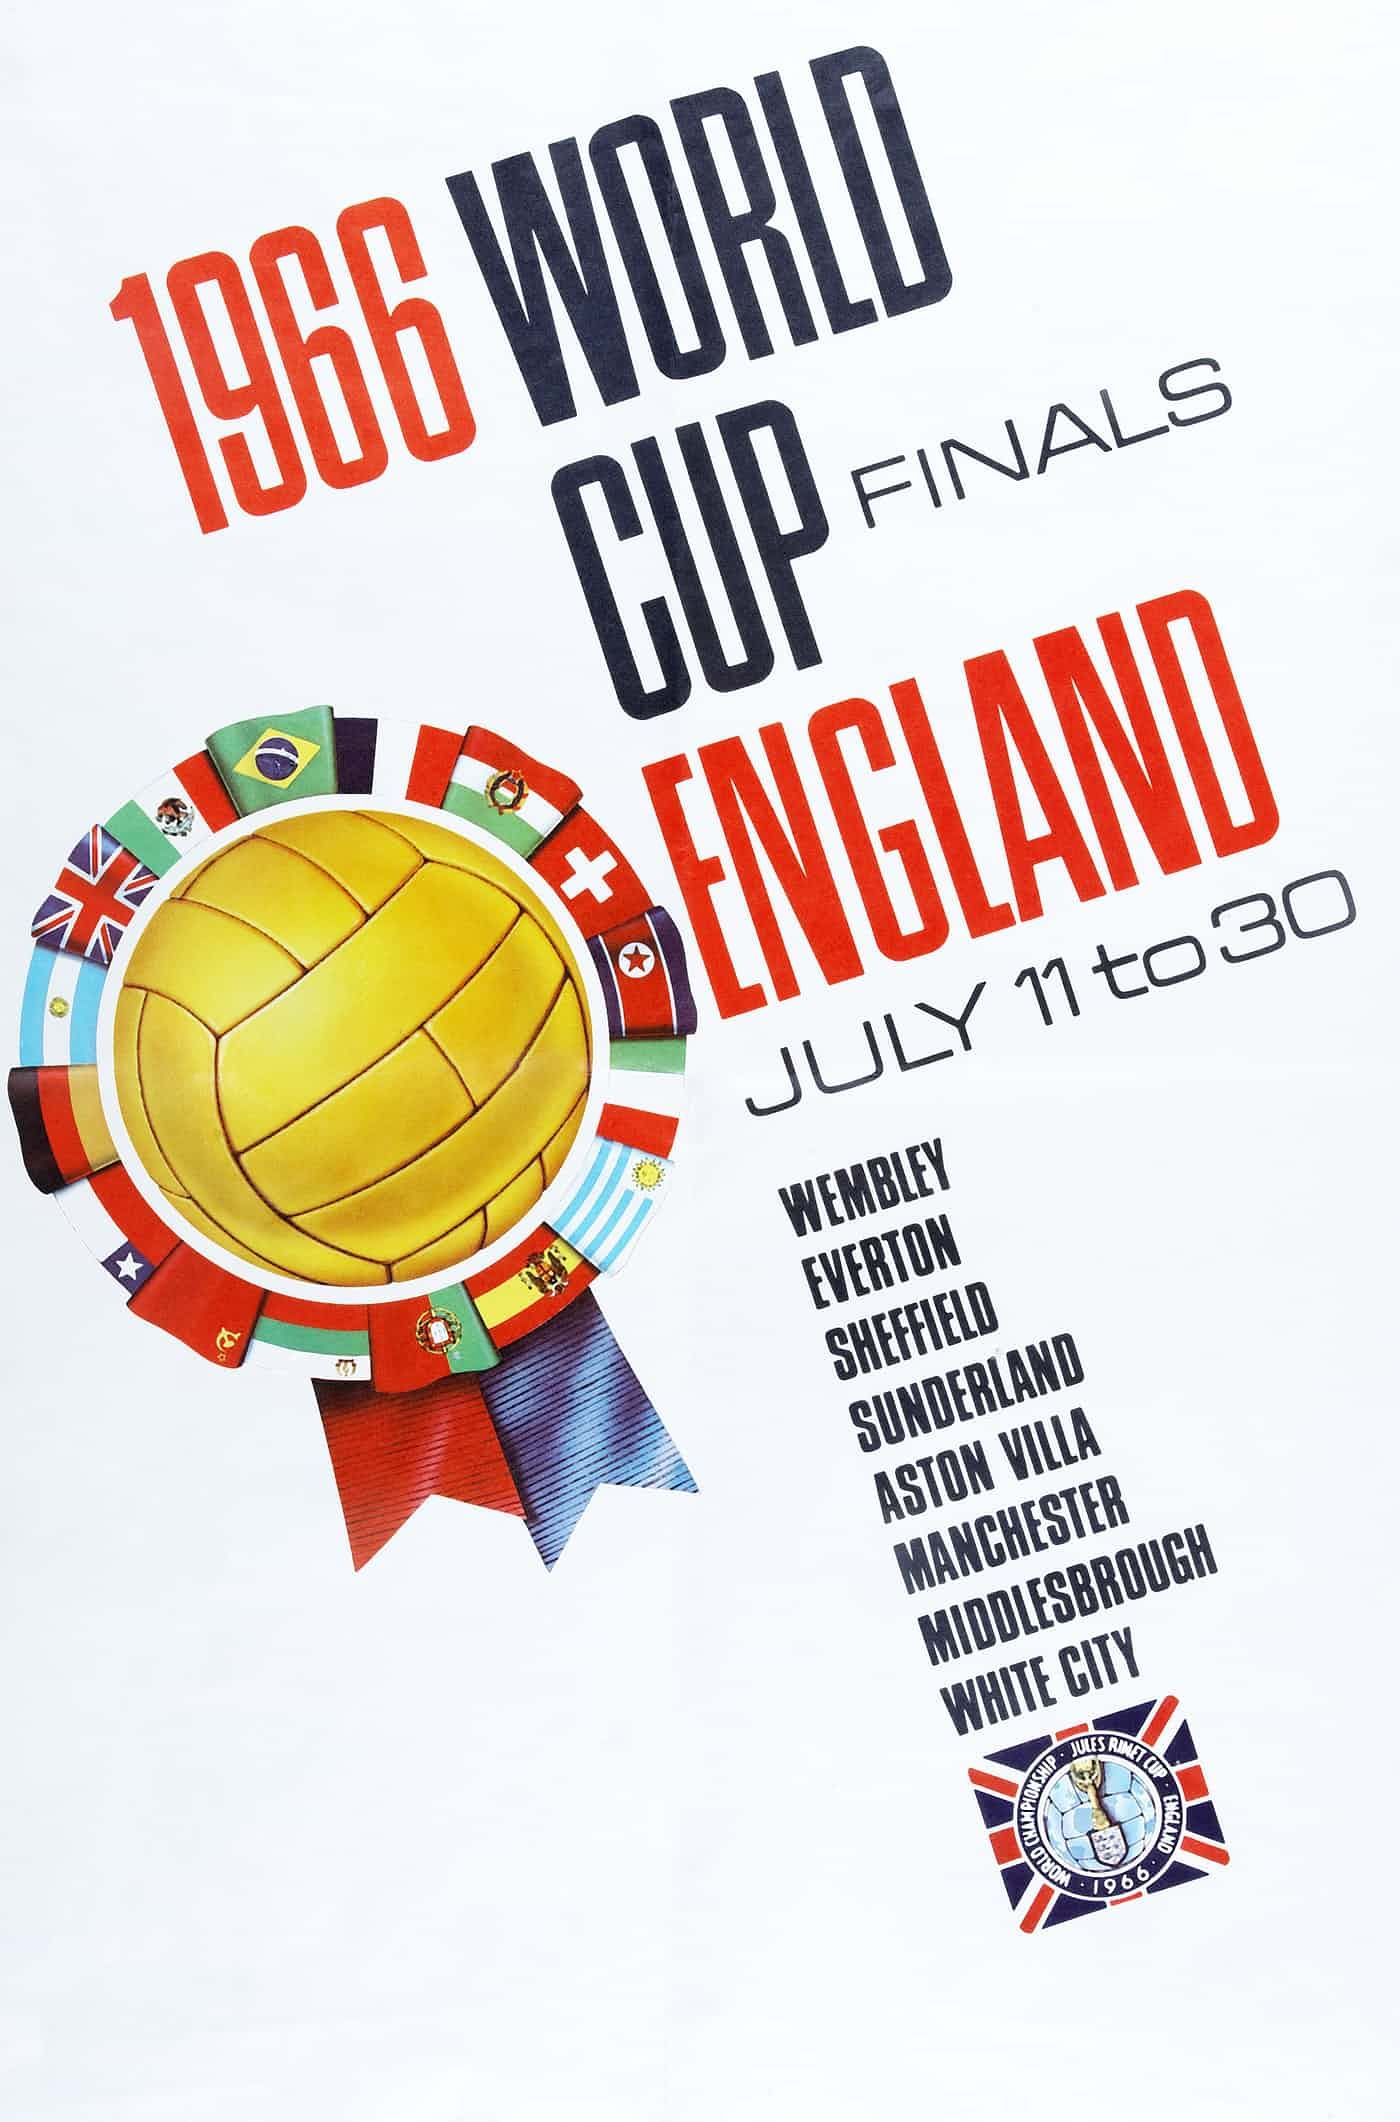 England 1966 Poster 1966 World Cup World Cup Final 1966 World Cup Final